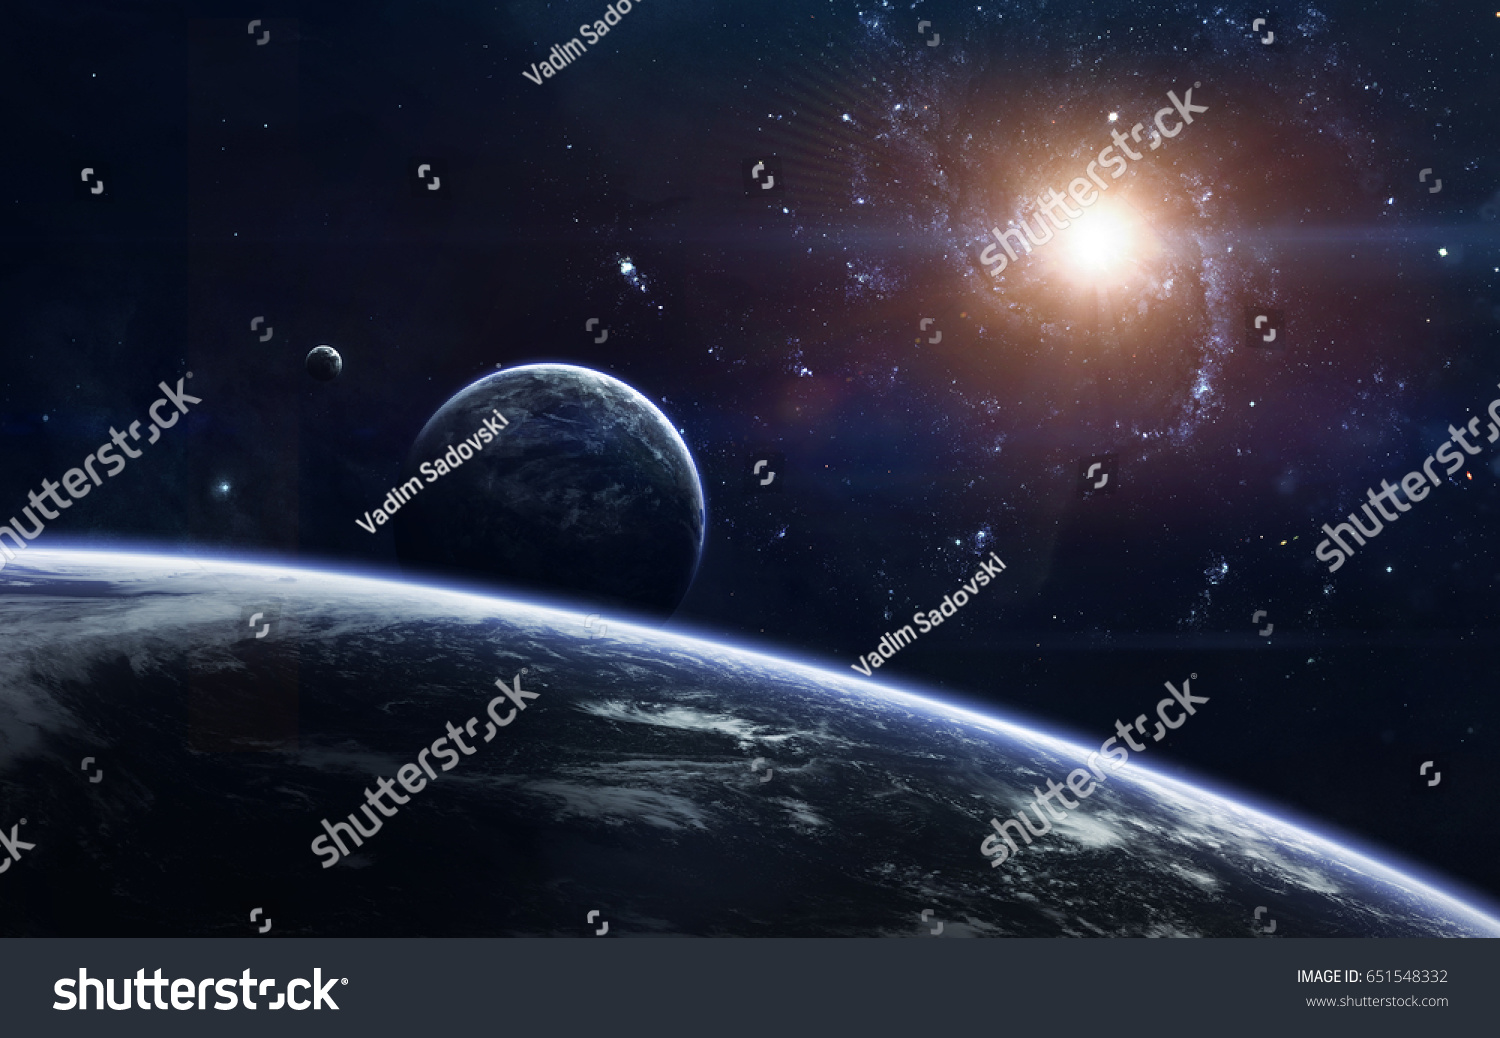 Science Fiction Space Wallpaper Incredibly Beautiful 651548332